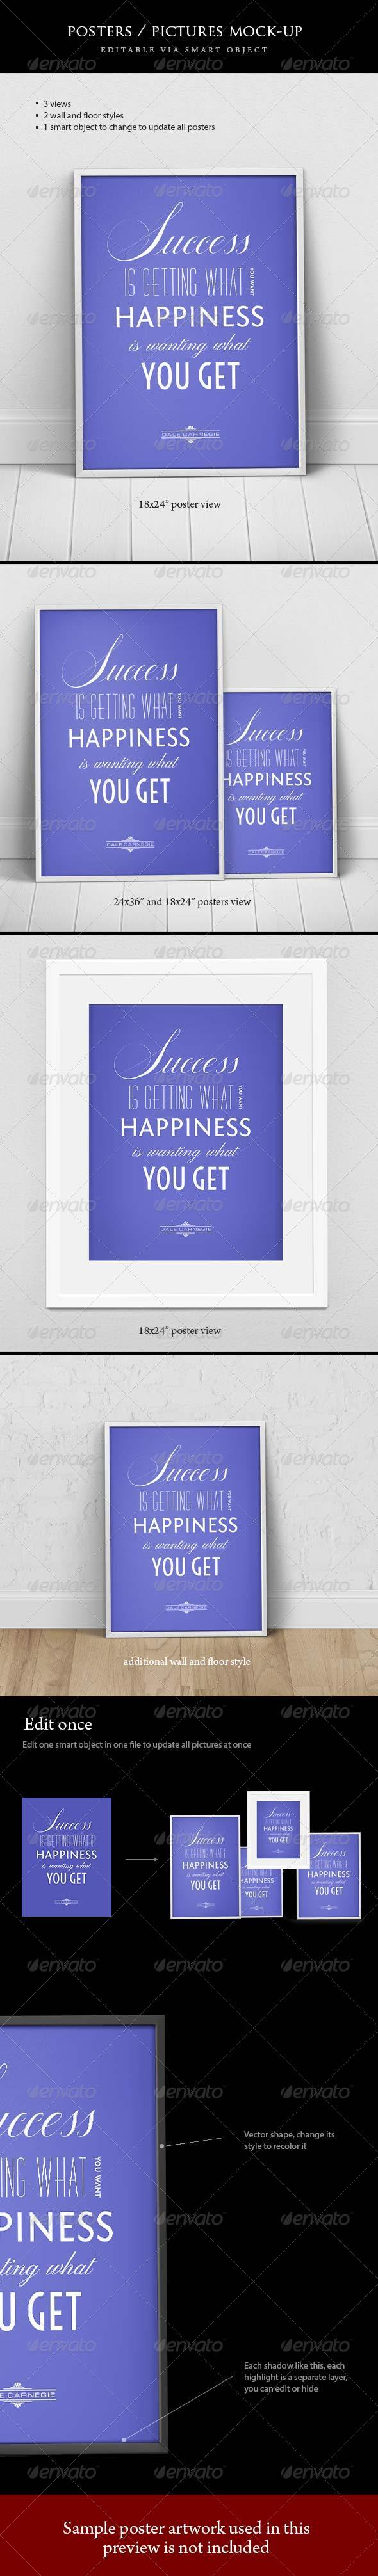 GraphicRiver Poster Picture mock-ups 5080214